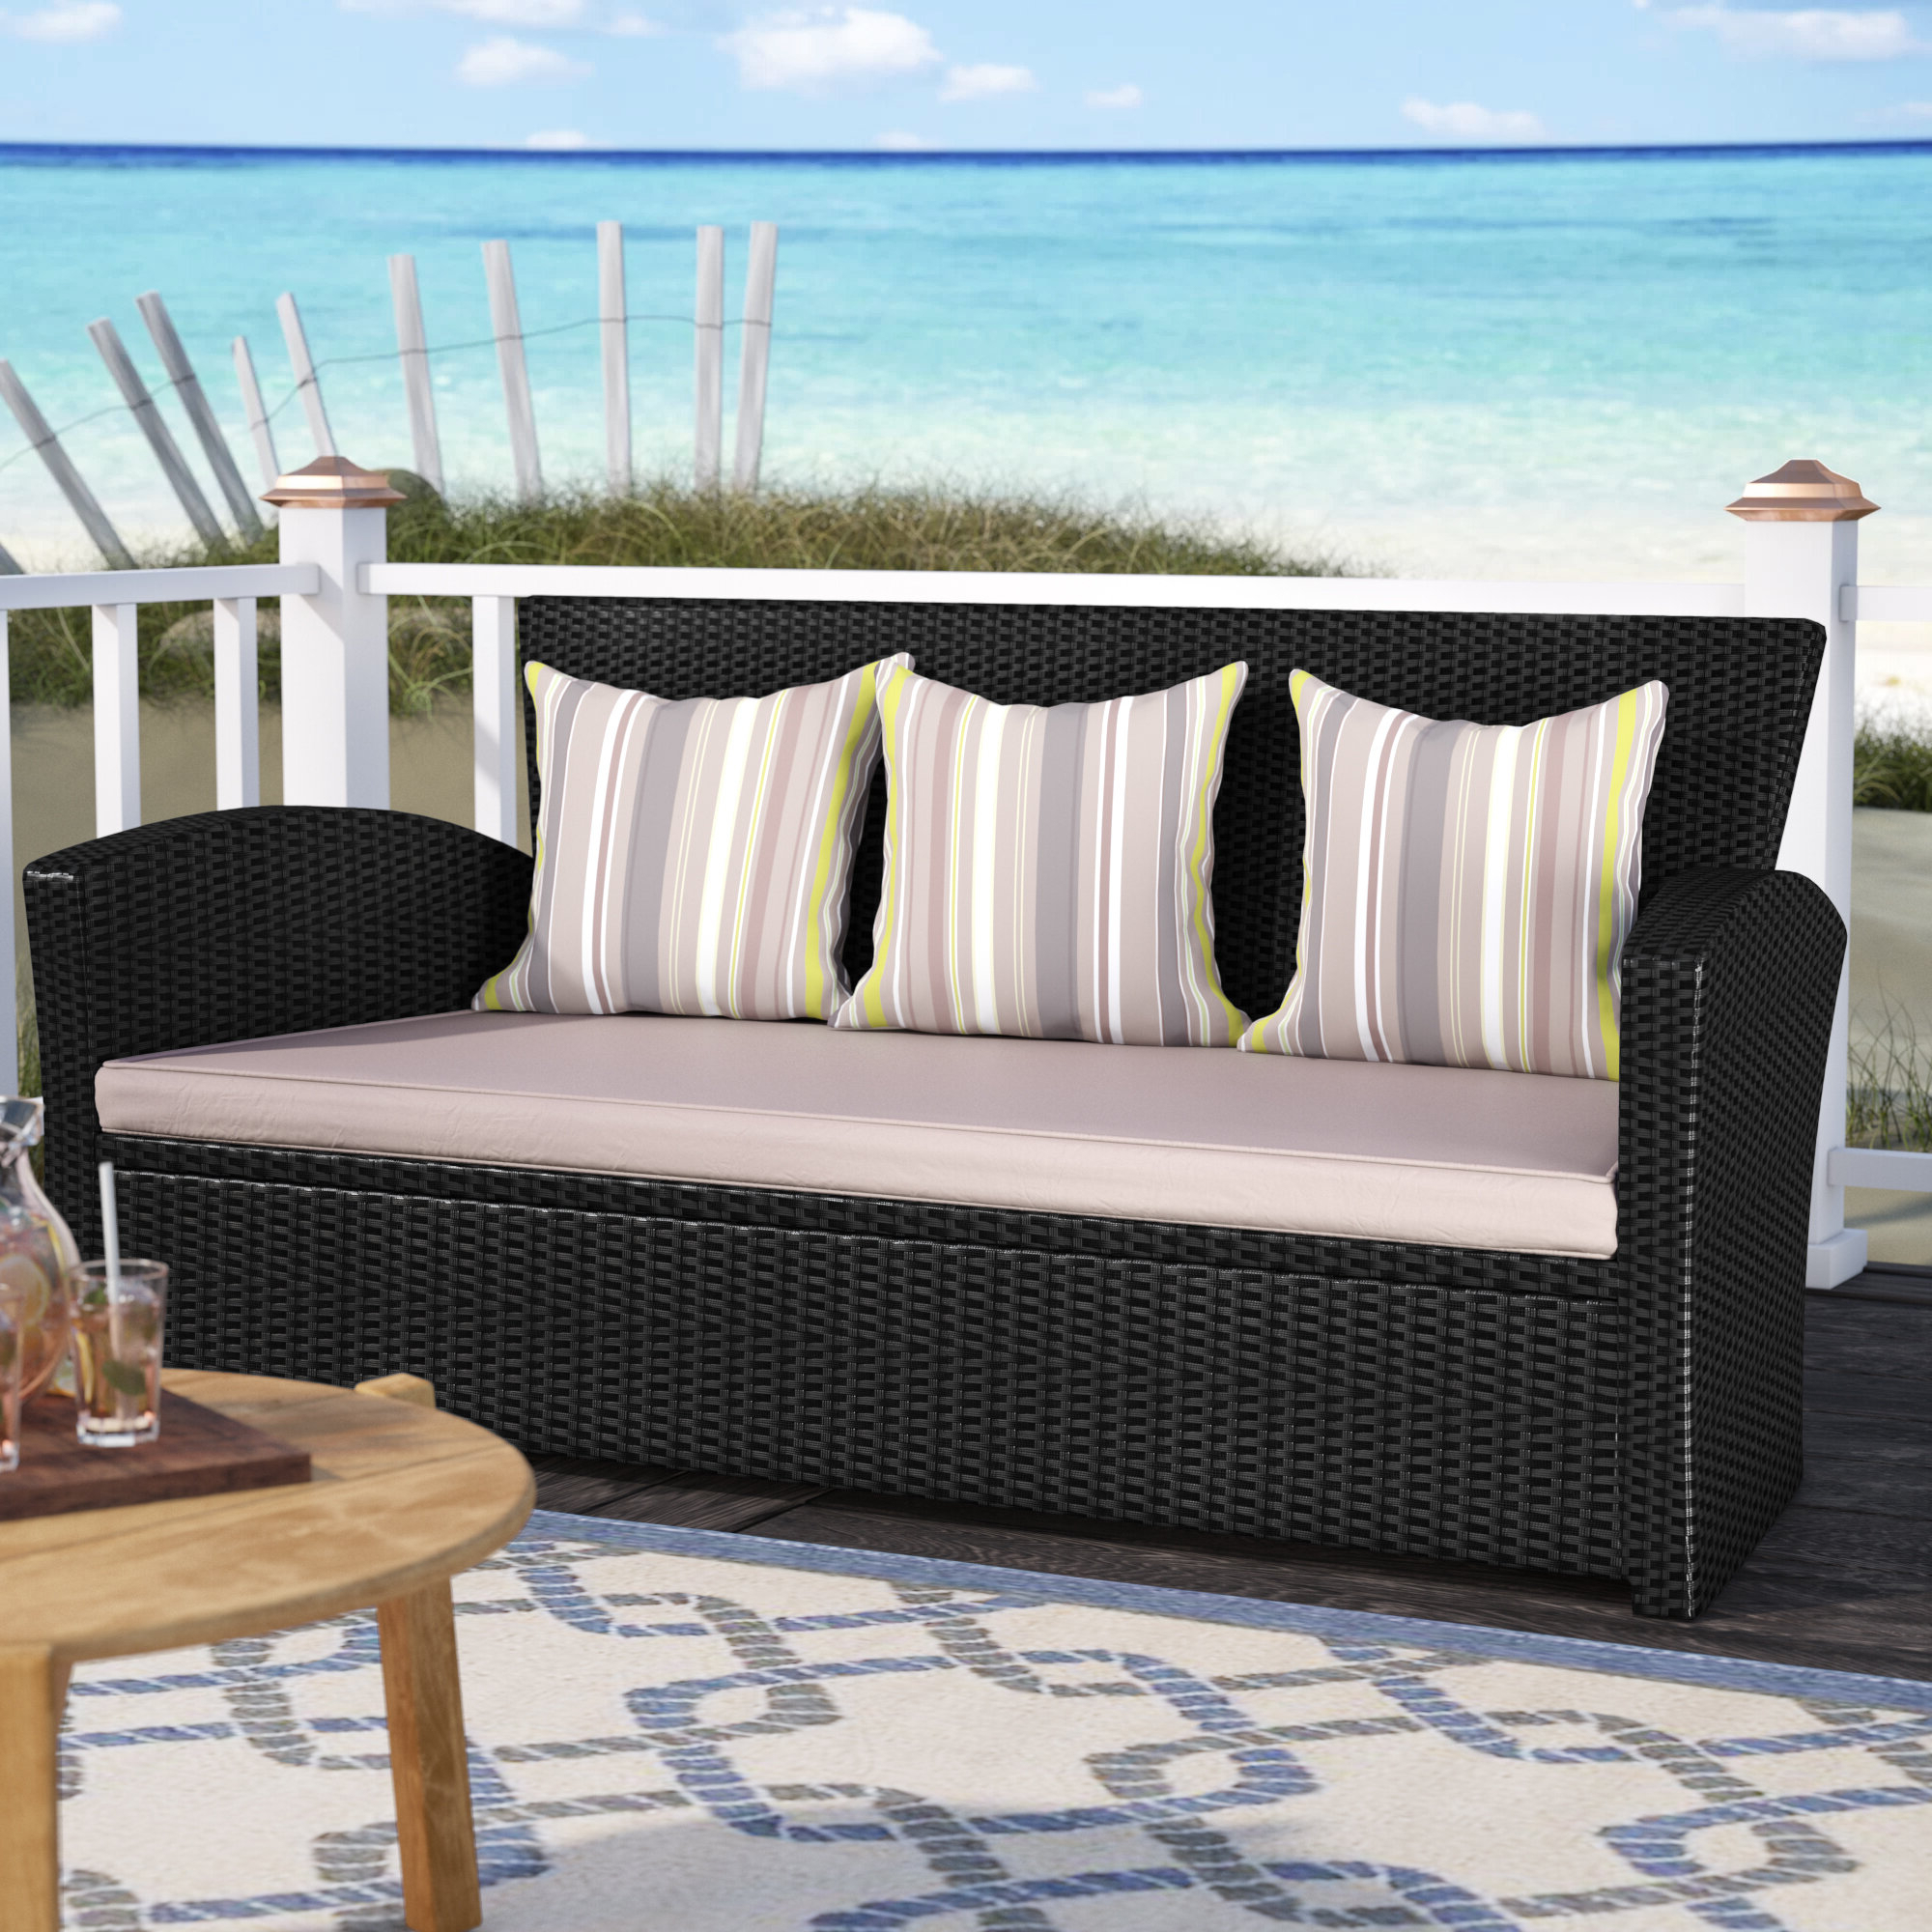 Preferred Valetta Patio Sofa With Cushions Intended For Stapleton Wicker Resin Patio Sofas With Cushions (View 8 of 20)